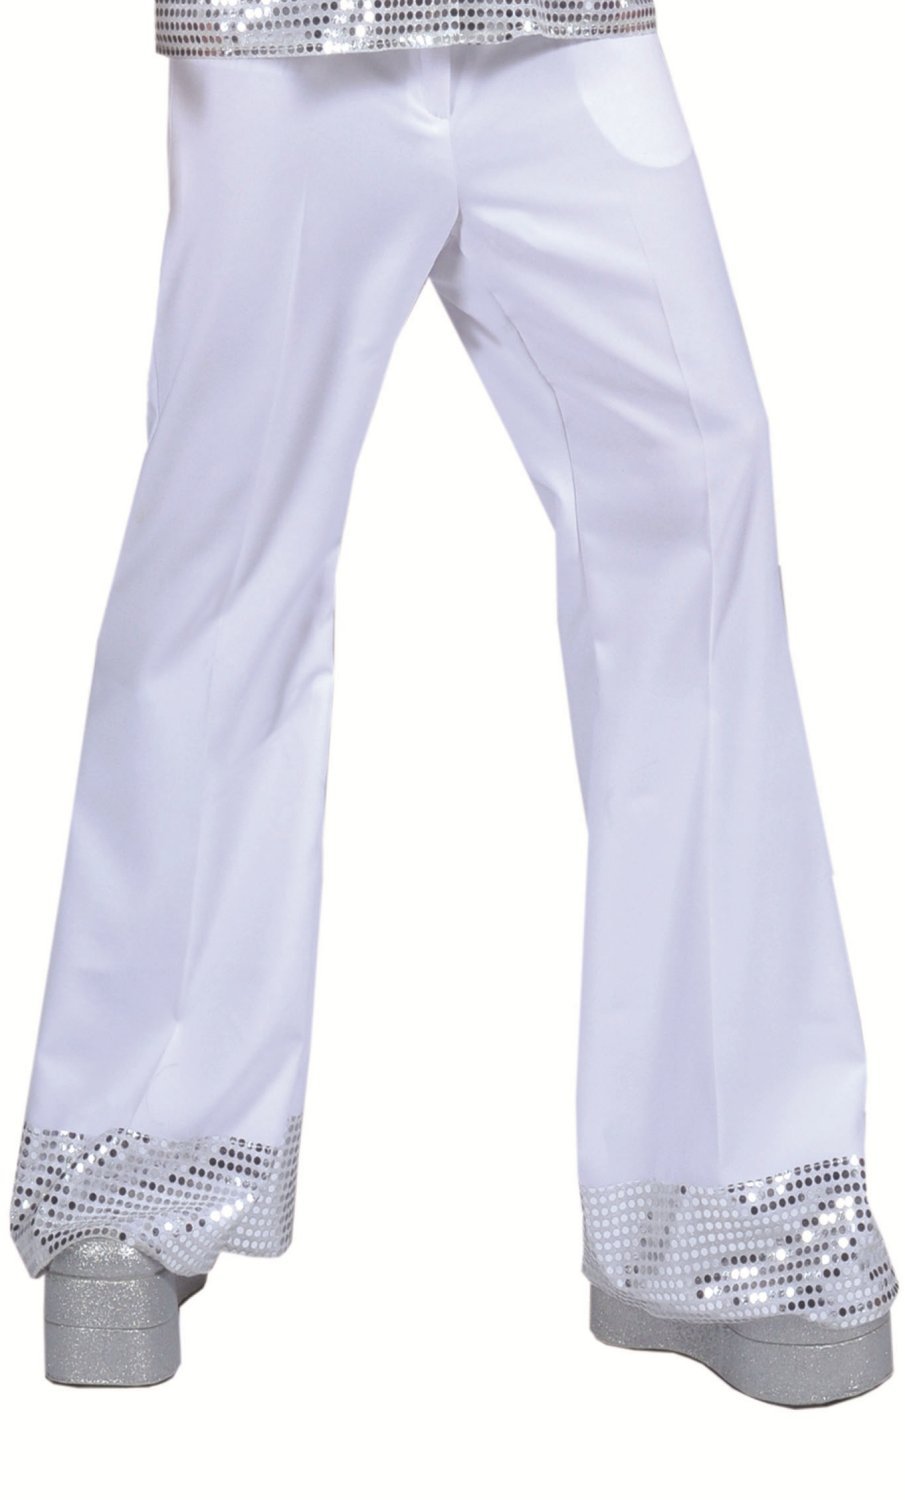 Pantalon-disco-blanc-pour-adulte